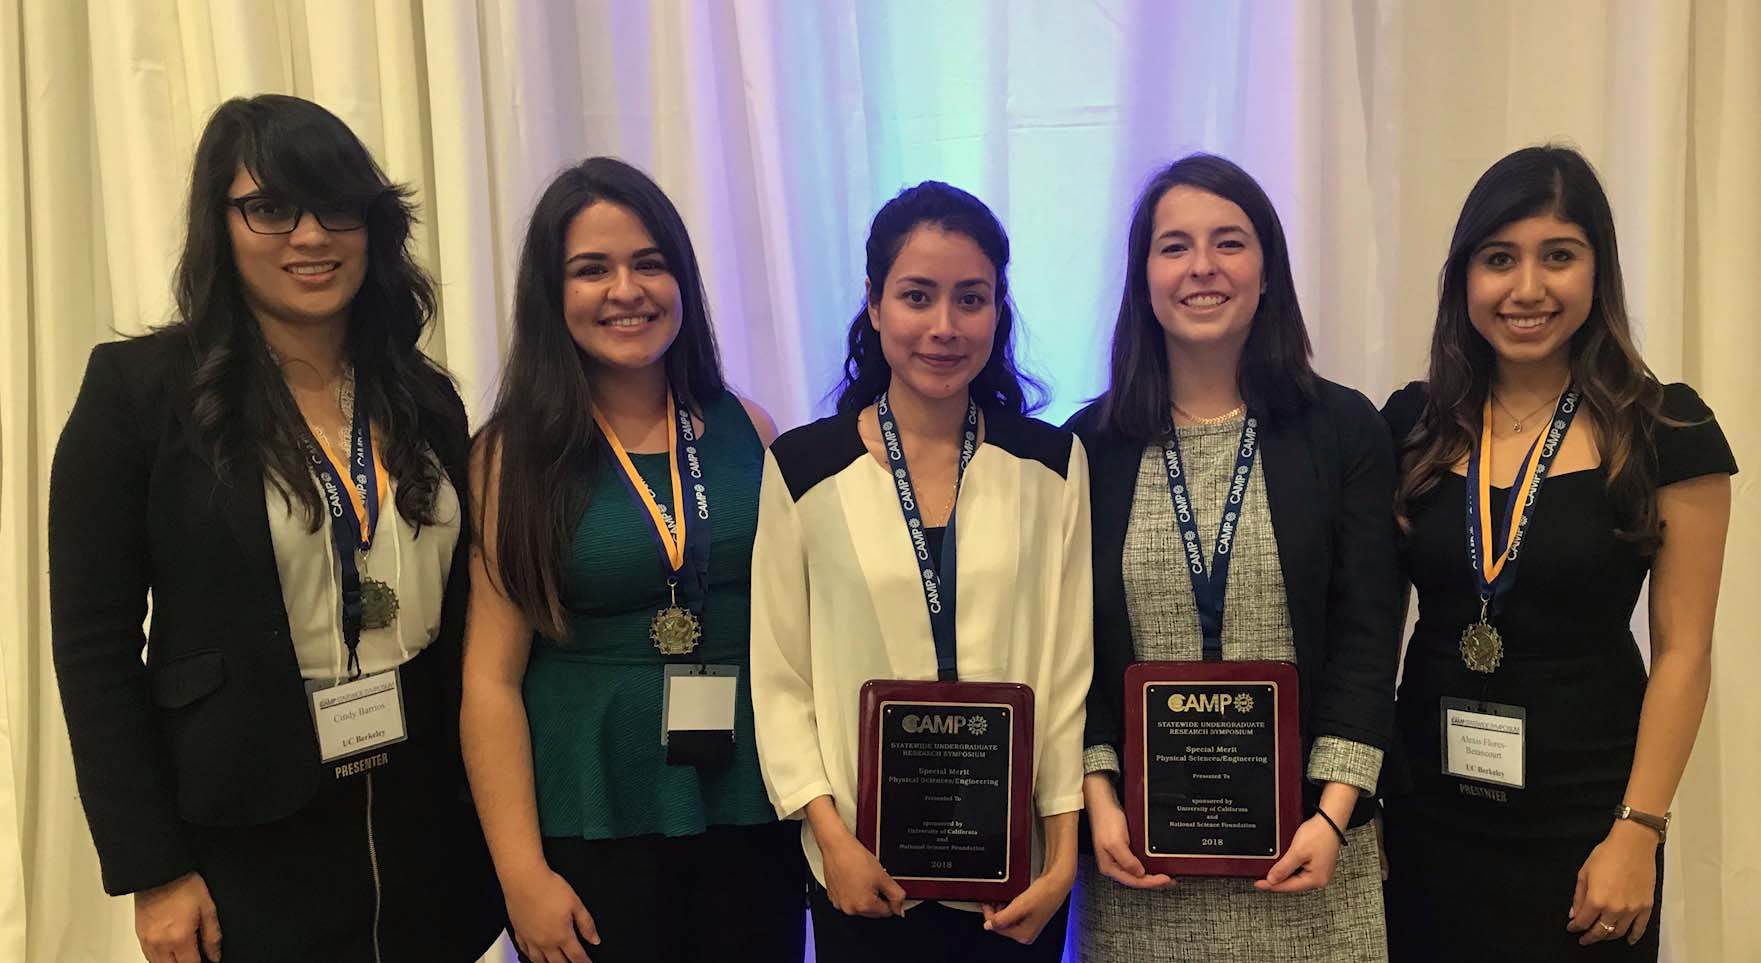 CAMP Scholars Win Top Statewide STEM Research Poster Awards